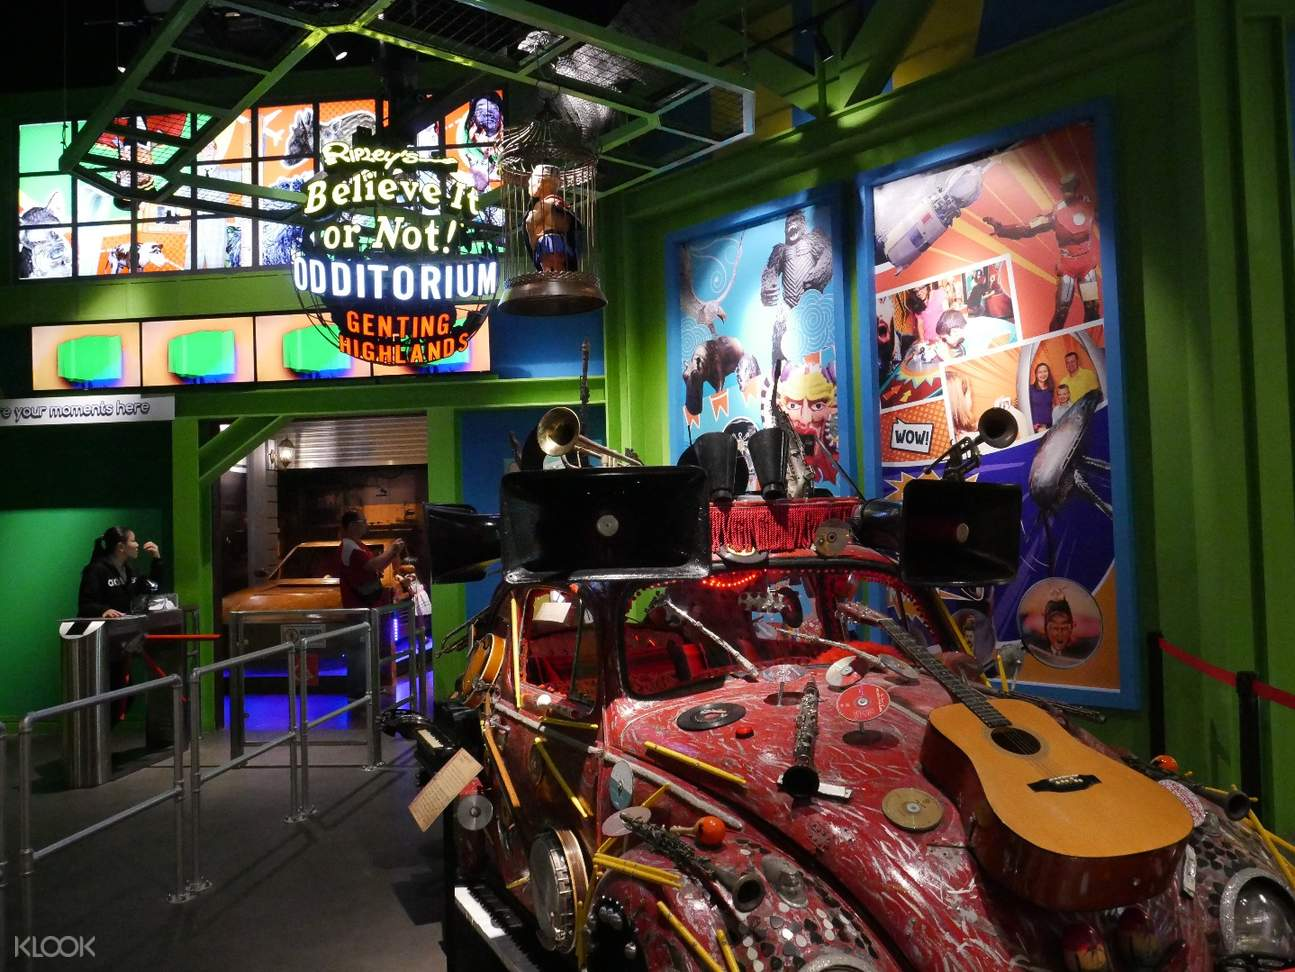 ripley's believe it or not museum adventureland genting highlands admission ticket kuala lumpur